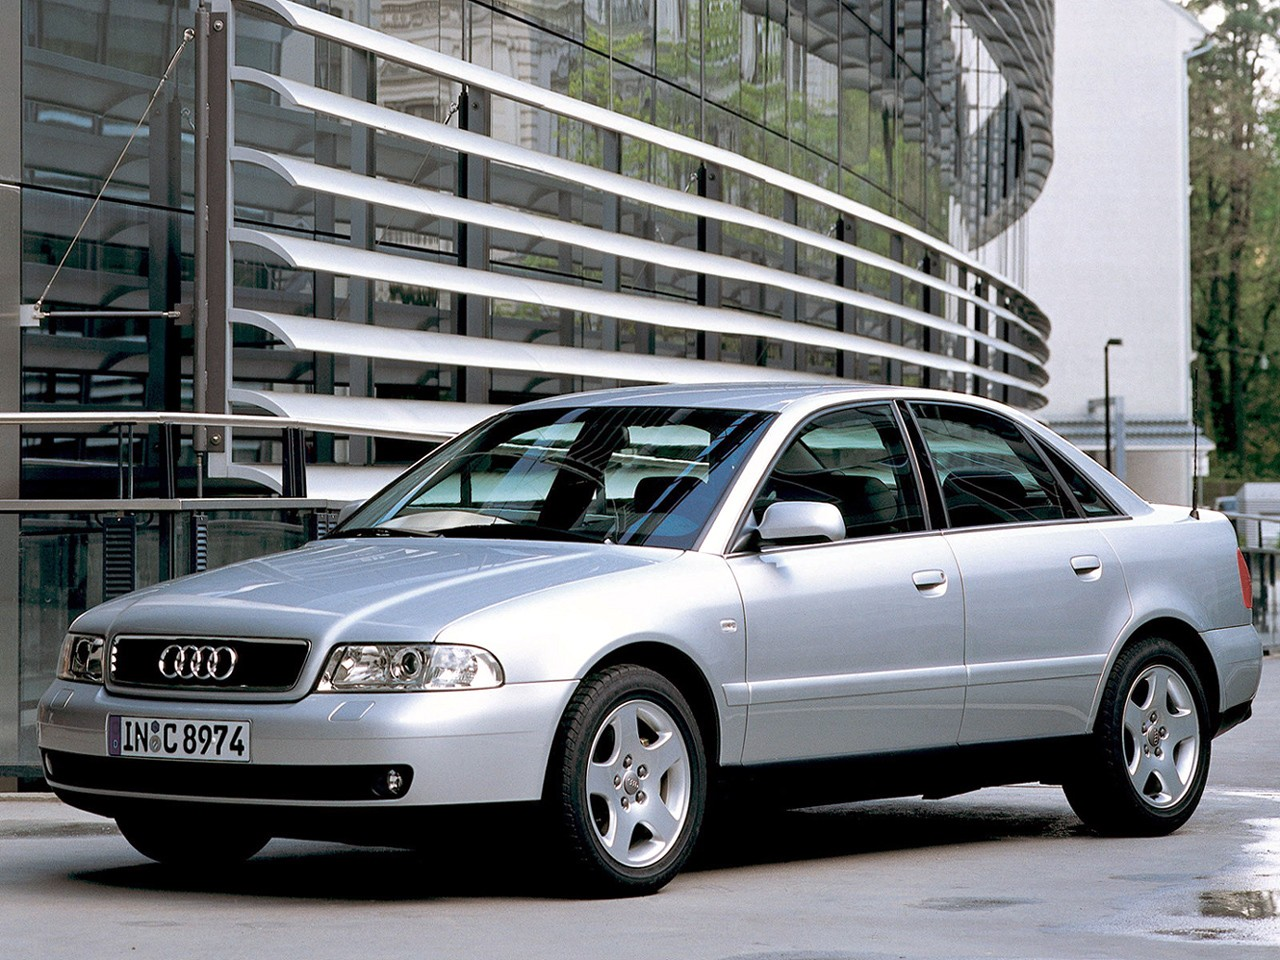 1999 Audi A4 Photos Informations Articles 1997 Volvo 960 Engine Diagram 22